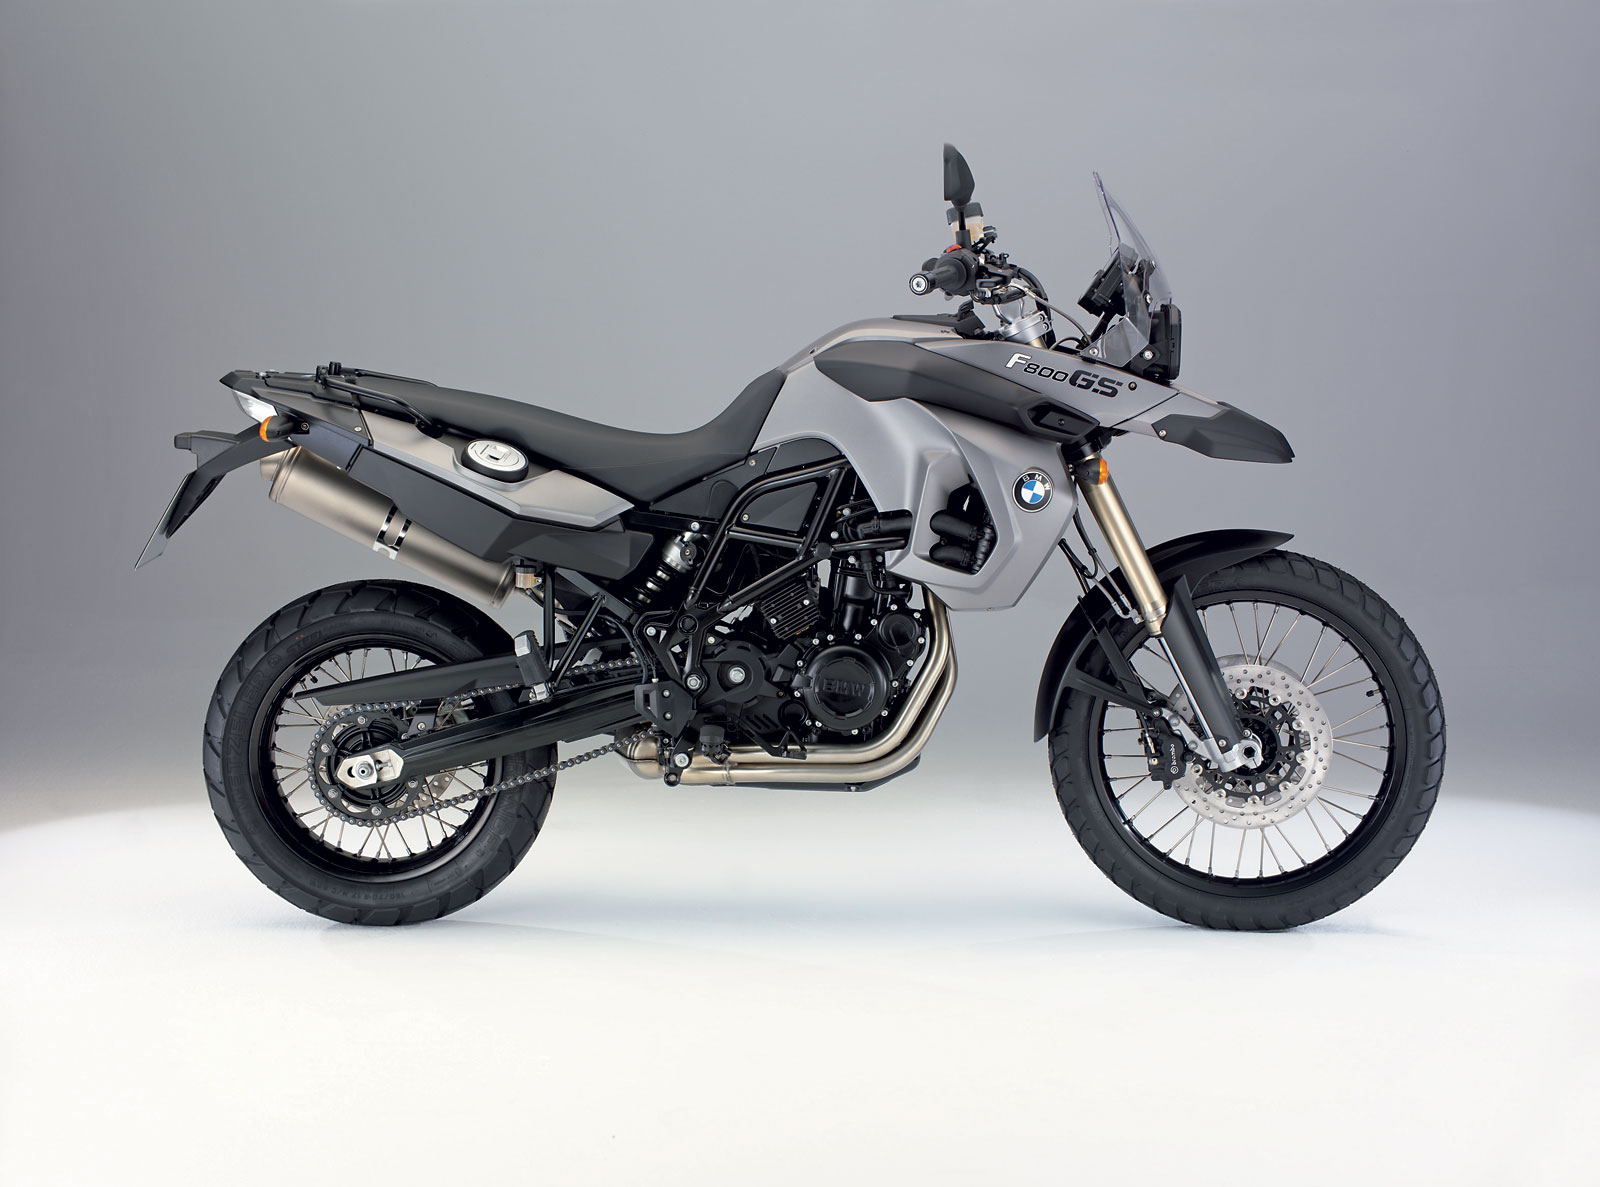 BMW F800GS 2010 images #78393